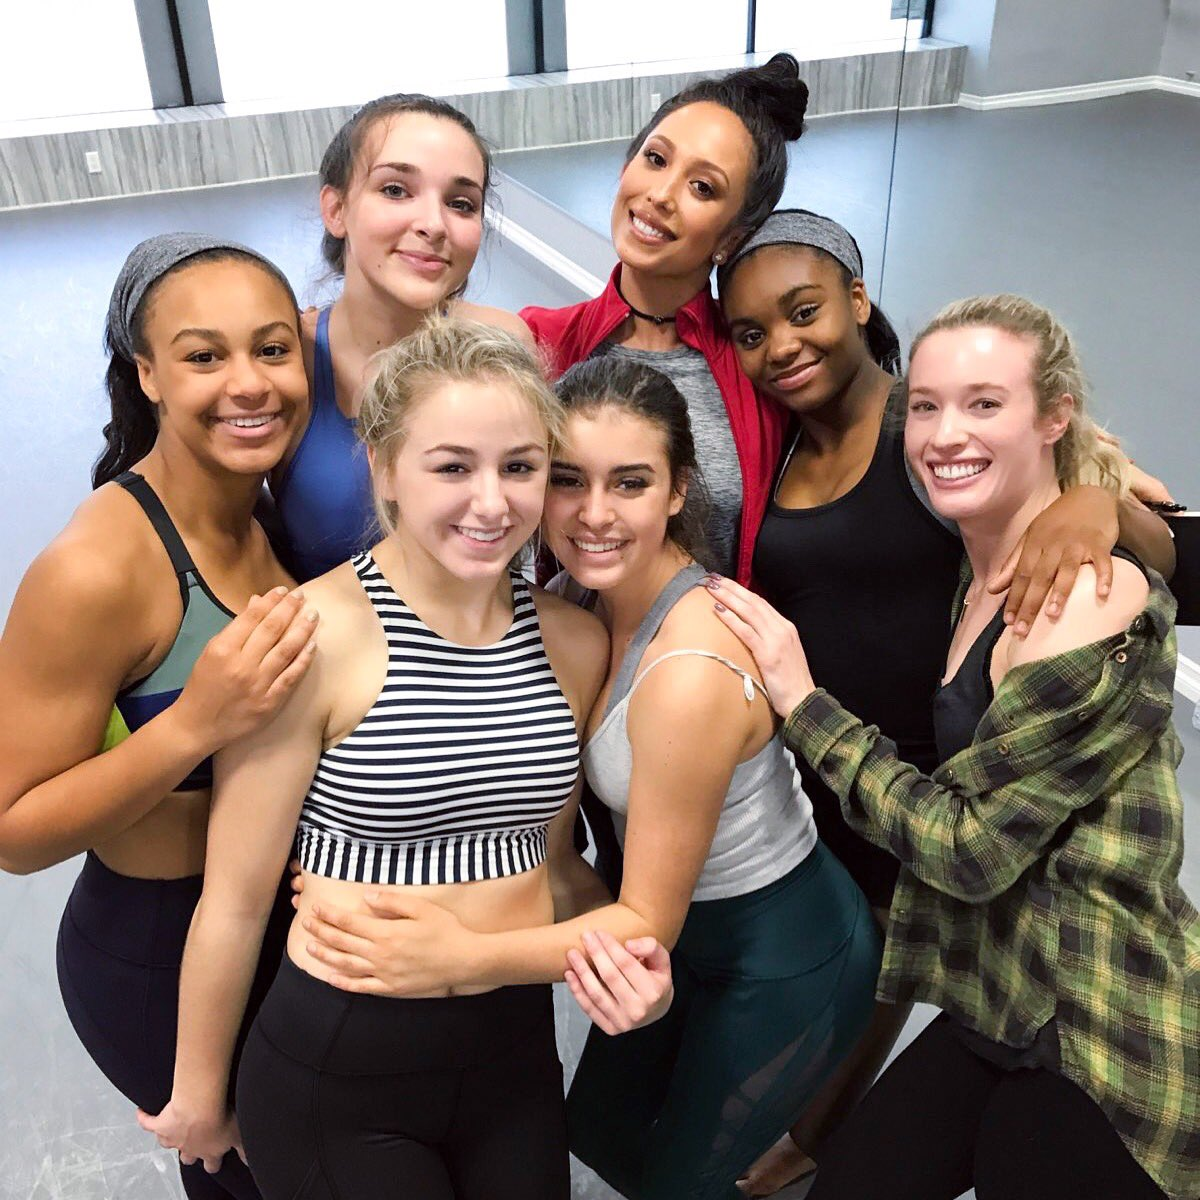 Mentoring these girls was such an amazing experience. I can't wait to work with young dancers again soon #thenextgeneration